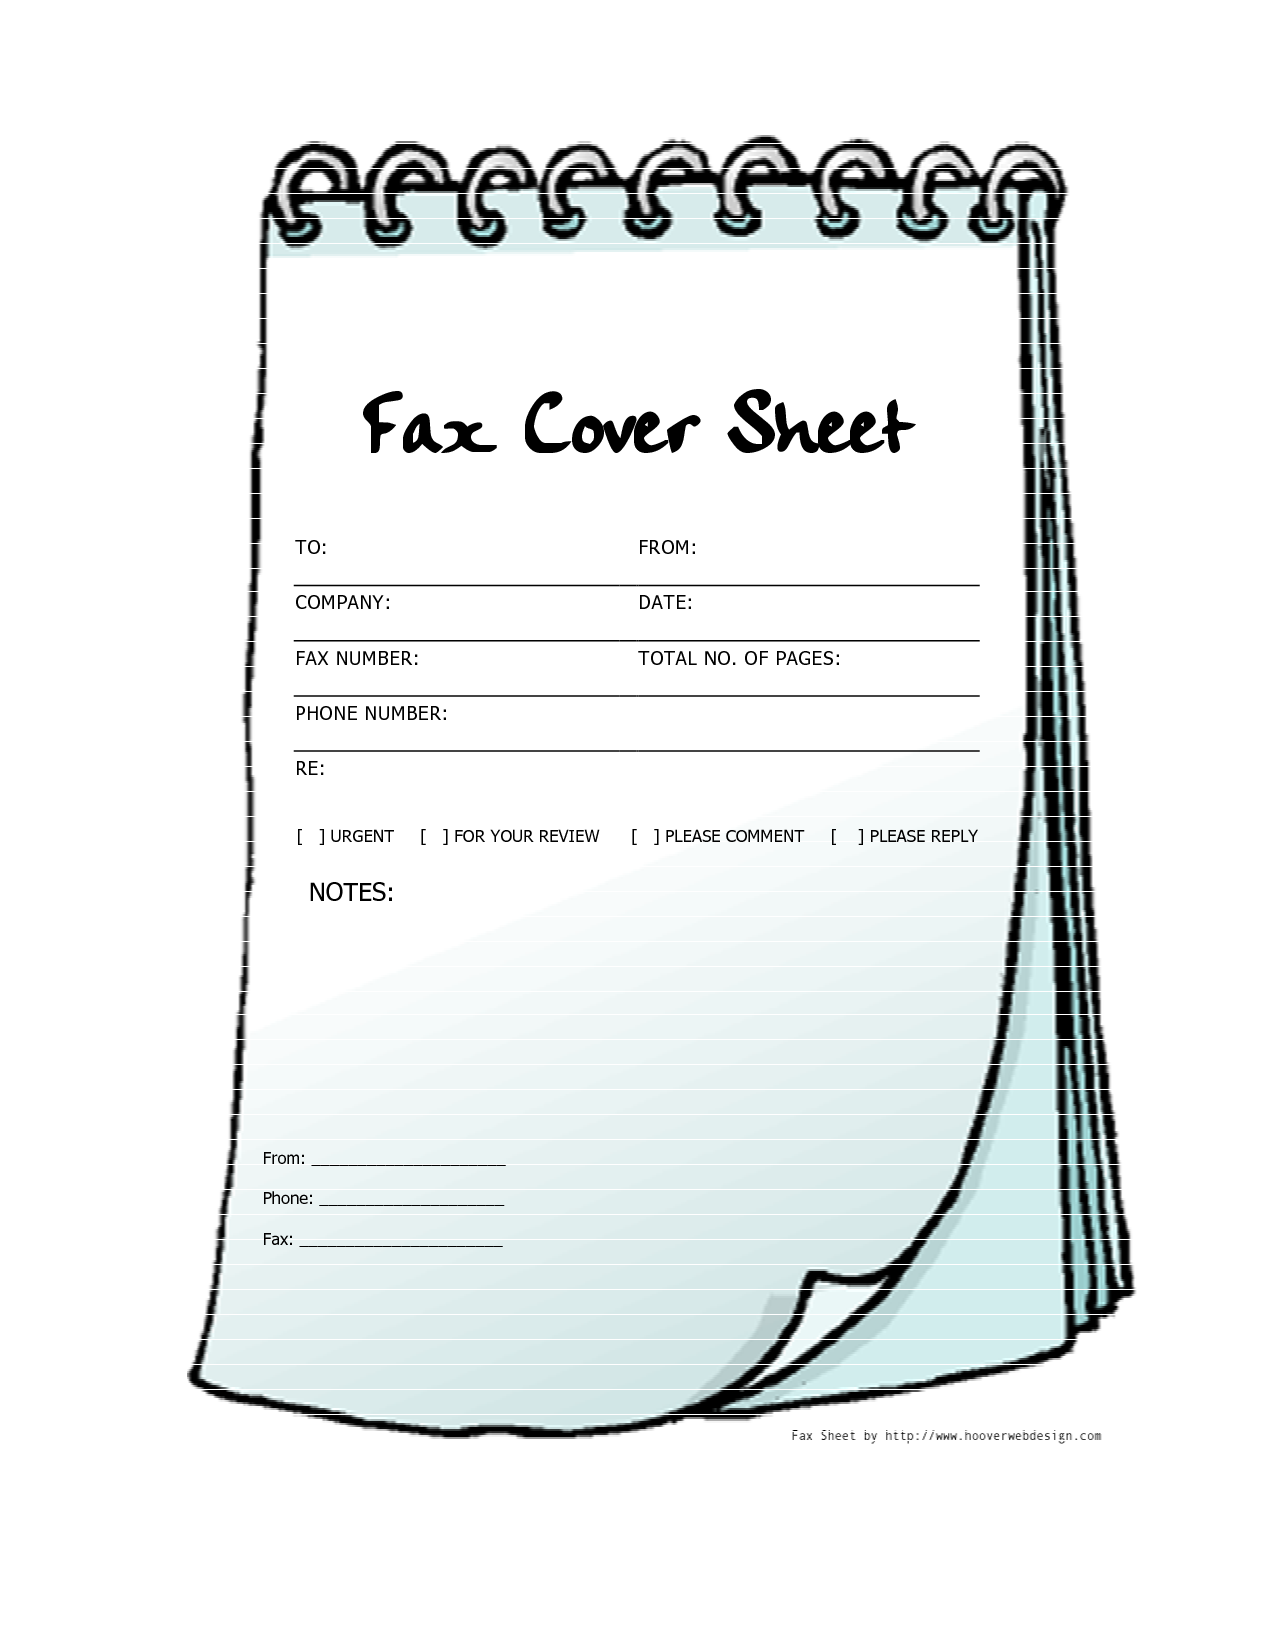 Free Printable Fax Cover Sheets | Free Printable Fax Cover Sheet ...